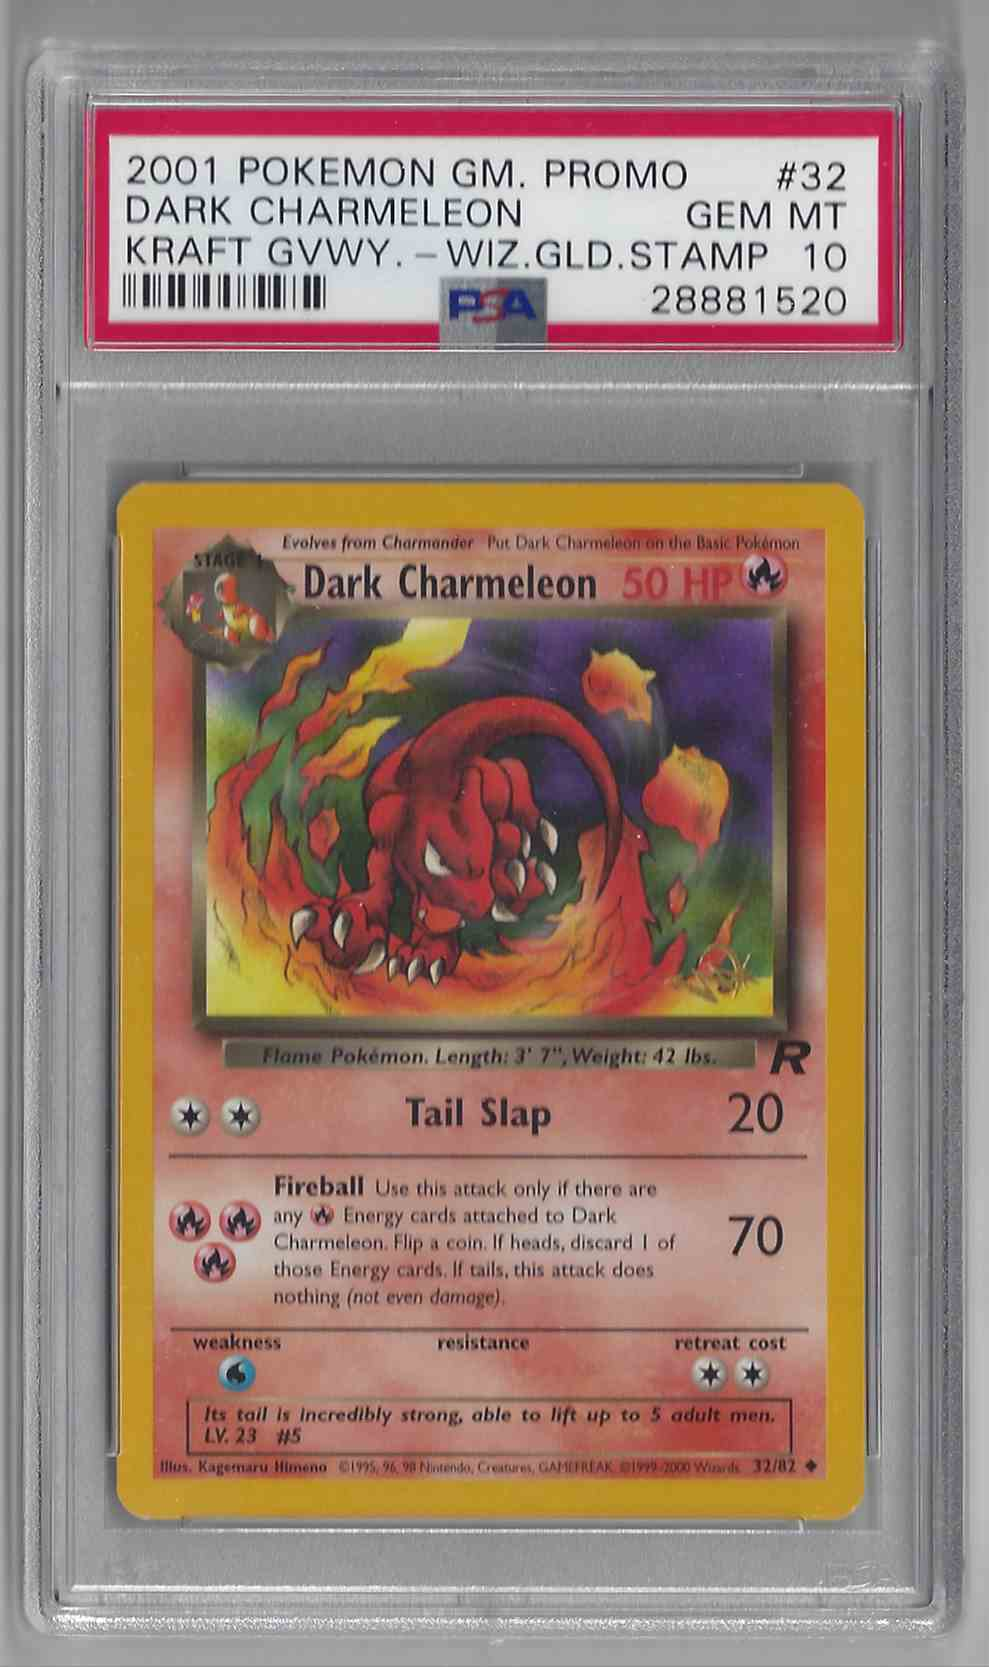 2001 Pokemon Gm Promo Rocket Dark Charmeleon #32 card front image